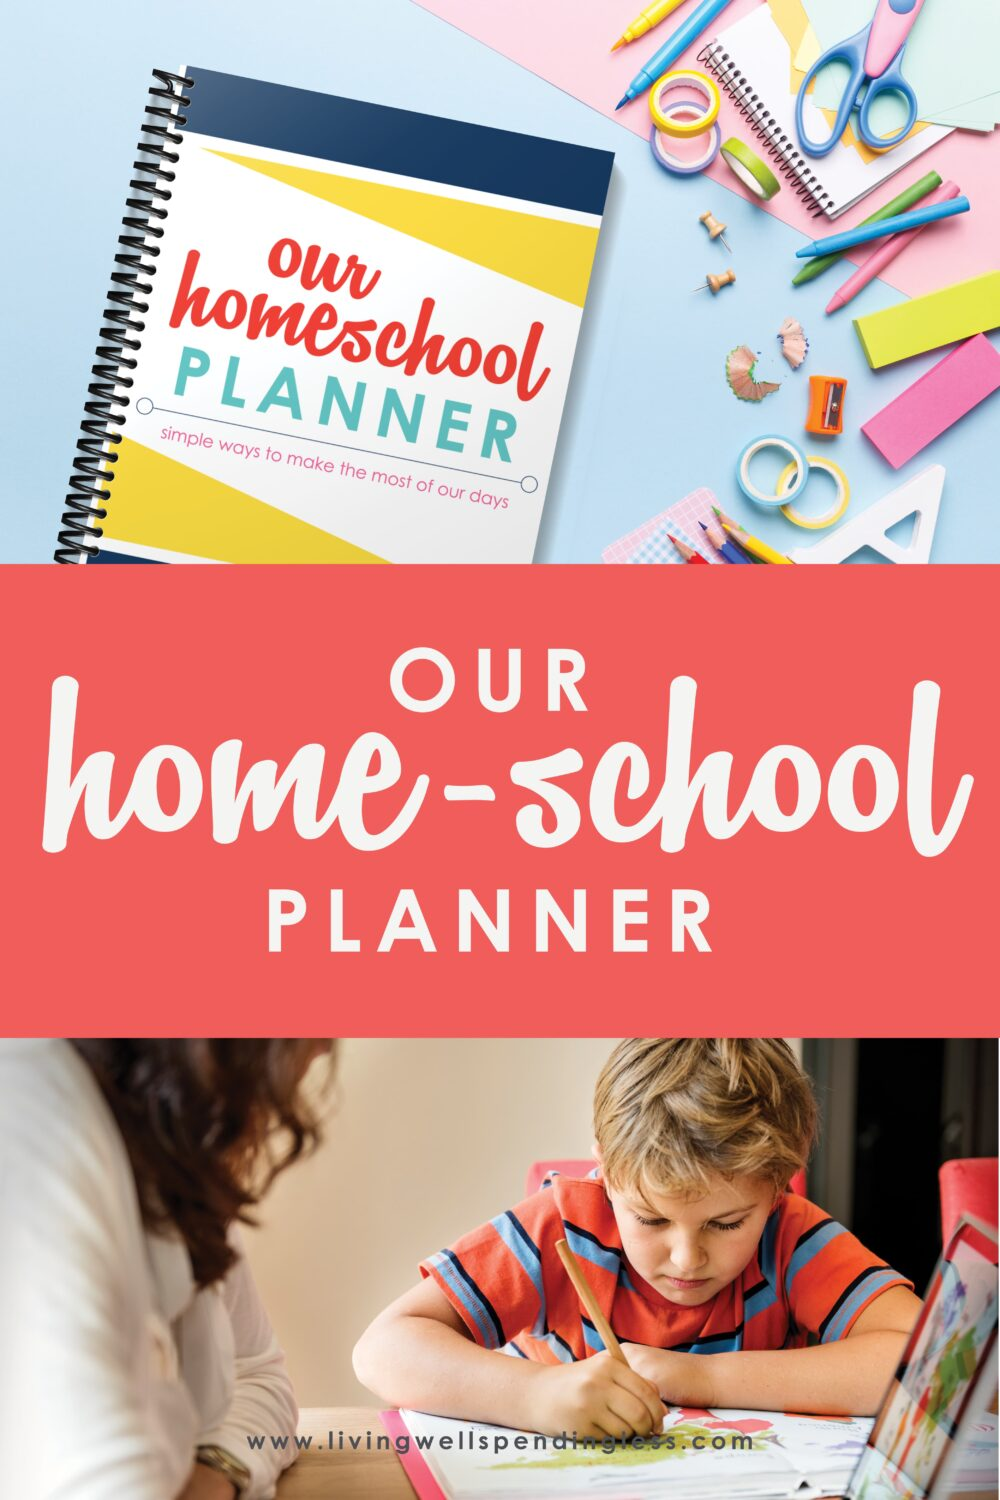 Need a better homeschooling technique to stay organized? This free printable homeschool planner is the perfect tool for planning ahead! #homeschoolplanner #homeschoolingtips #printableplanner #elearning